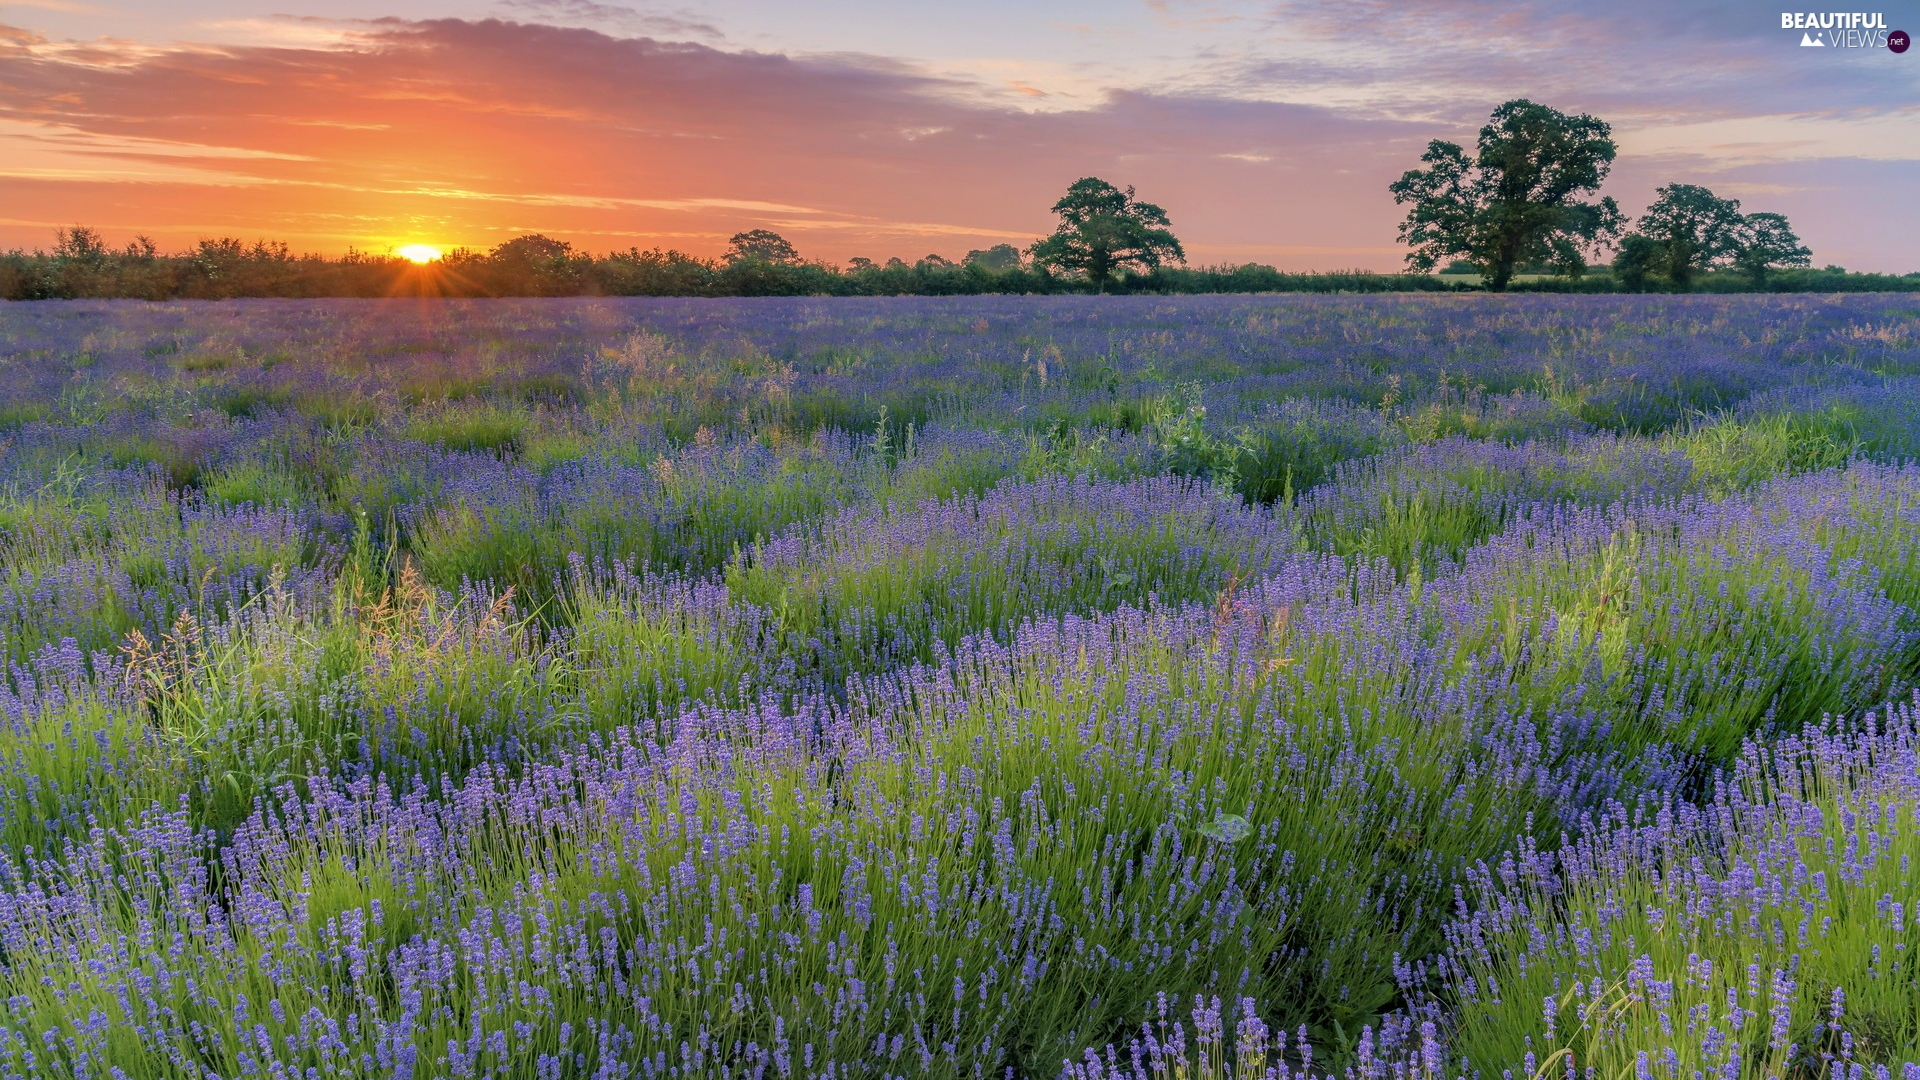 Field, Sunrise, trees, viewes, lavender, clouds